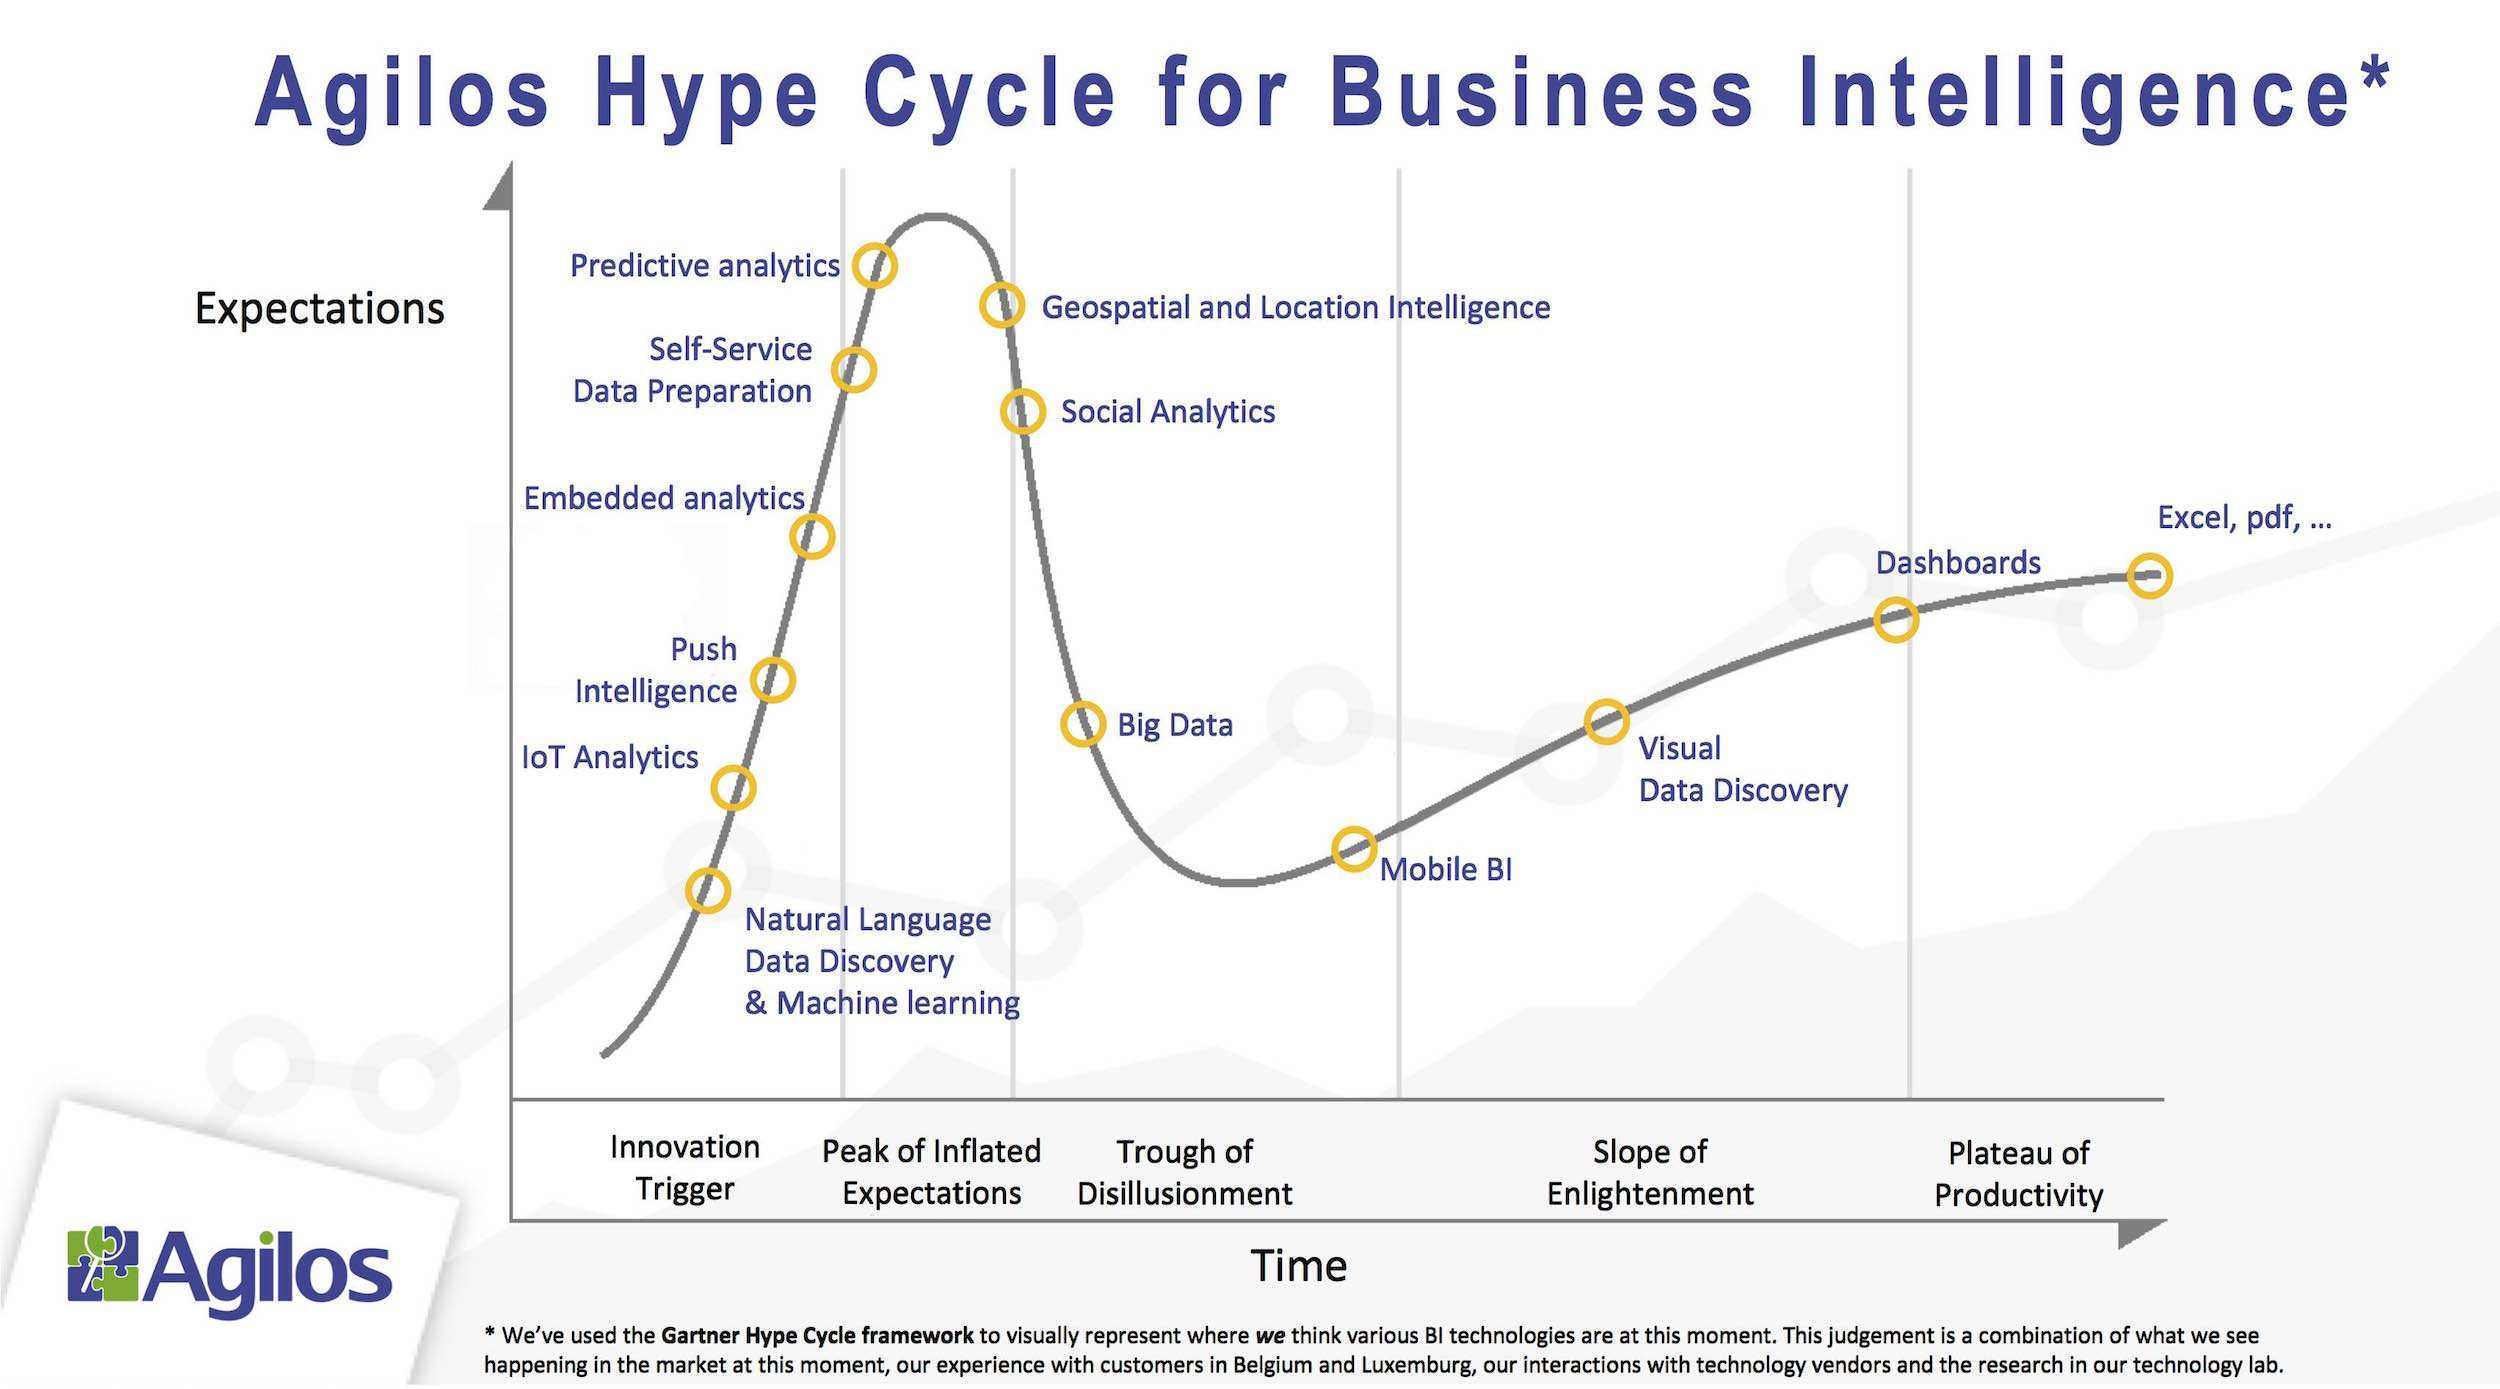 Agilos Hype Cycle for BI_2017_3.jpg